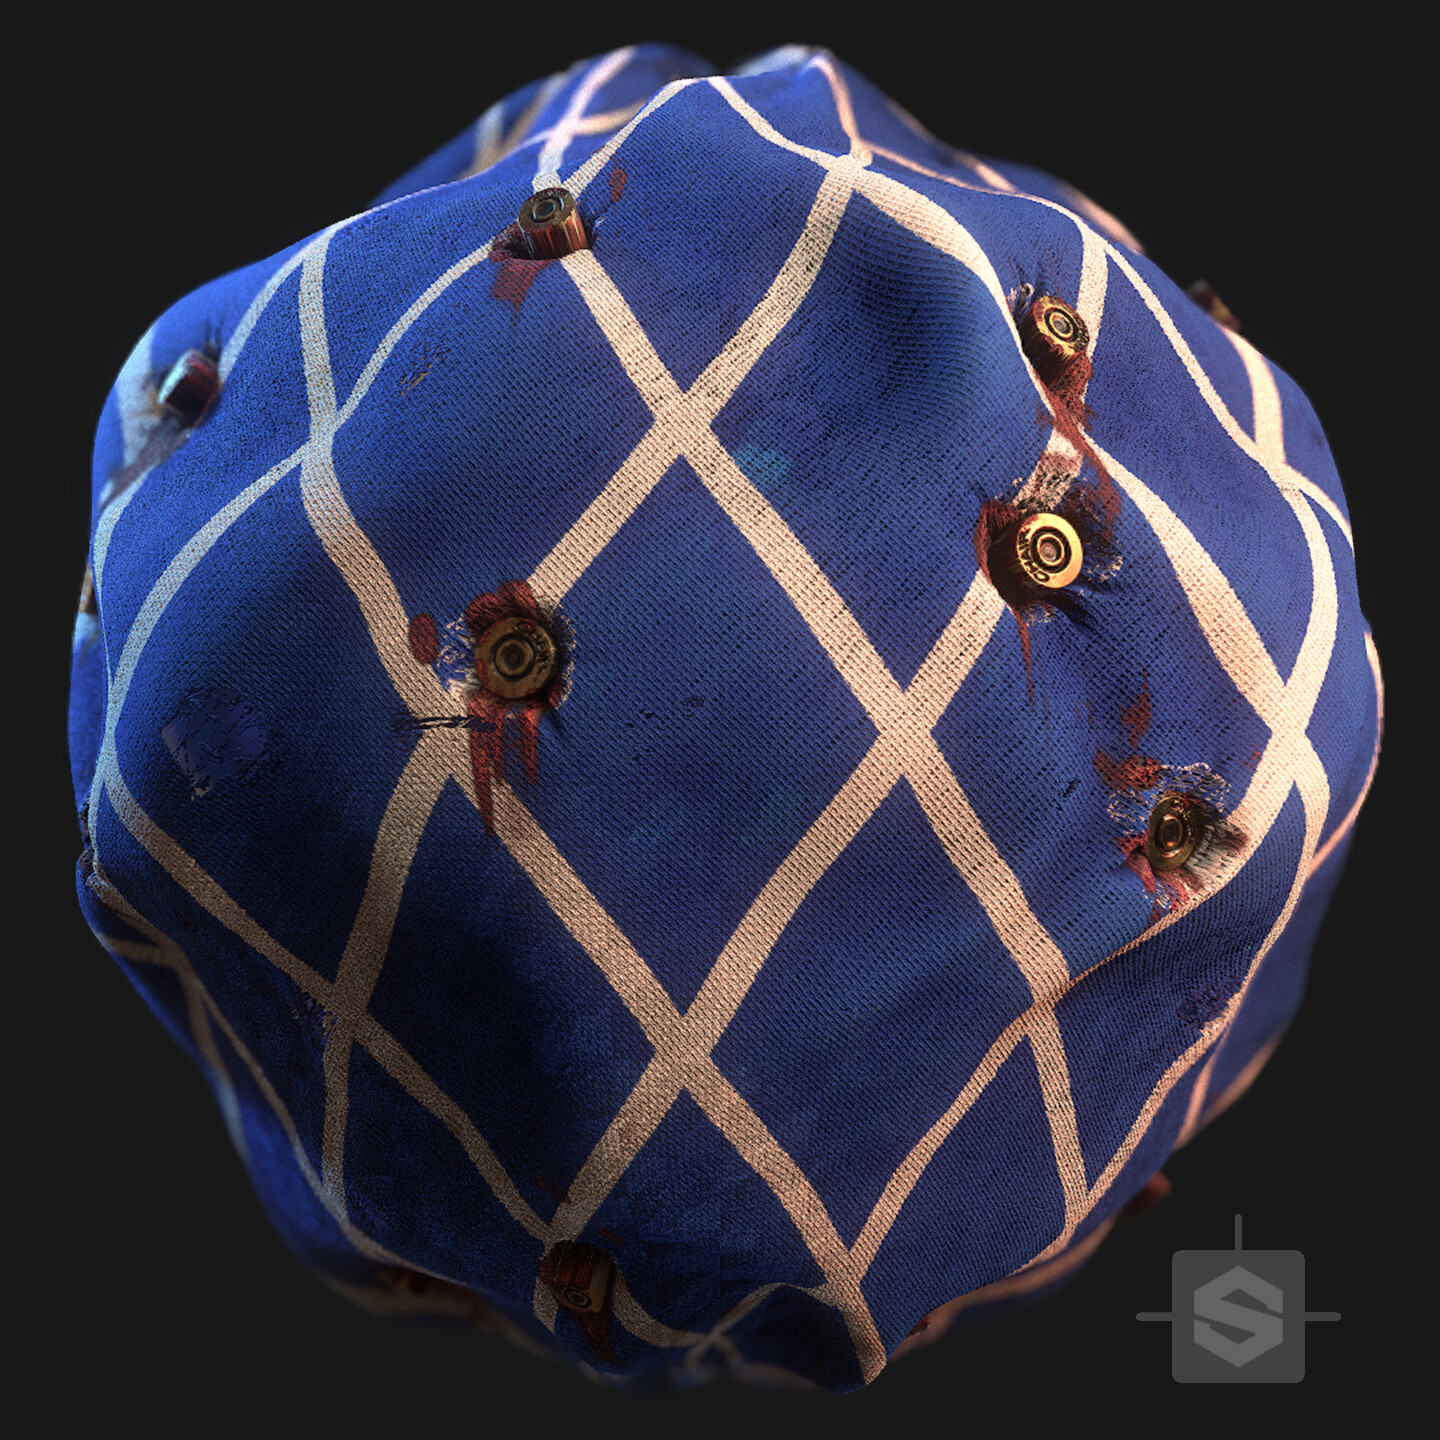 Substance Designer - Casings in Fabric